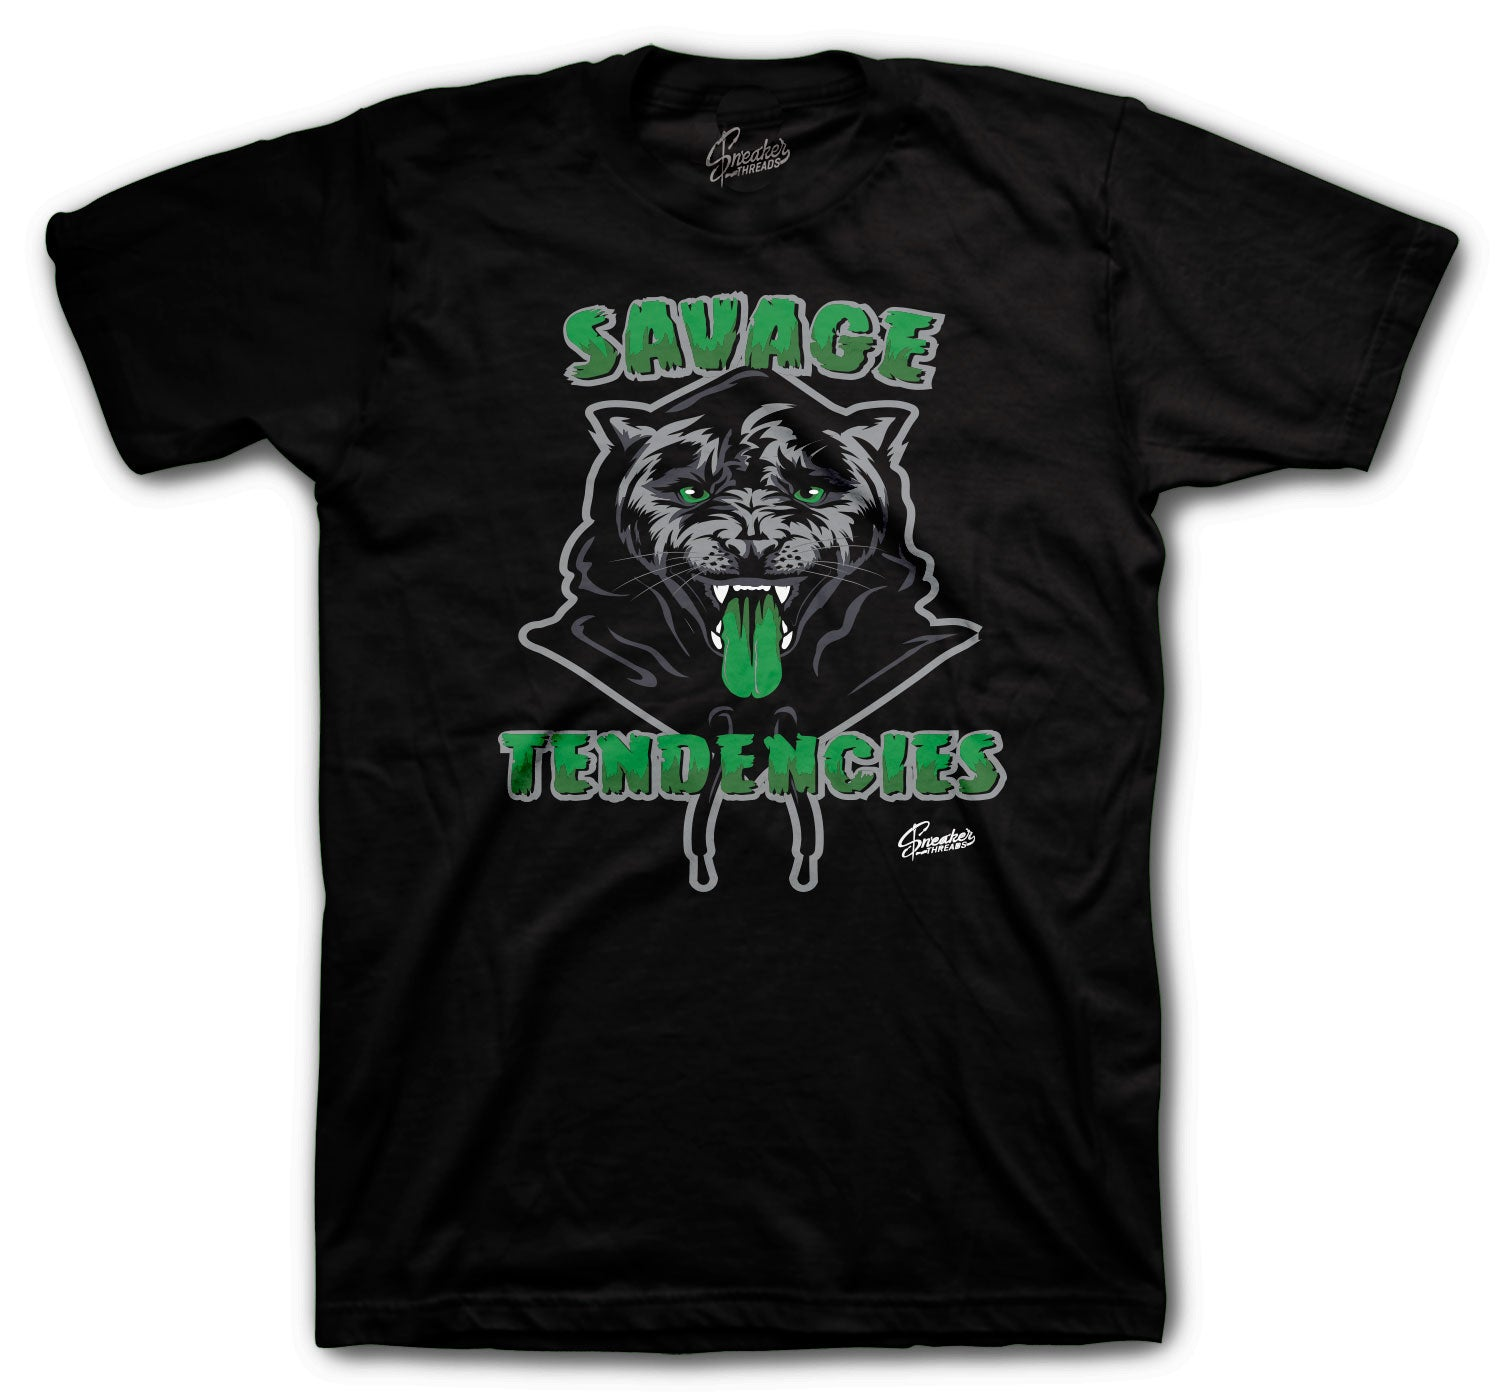 Jordan 13 Lucky Green Savage Tendencies Shirt